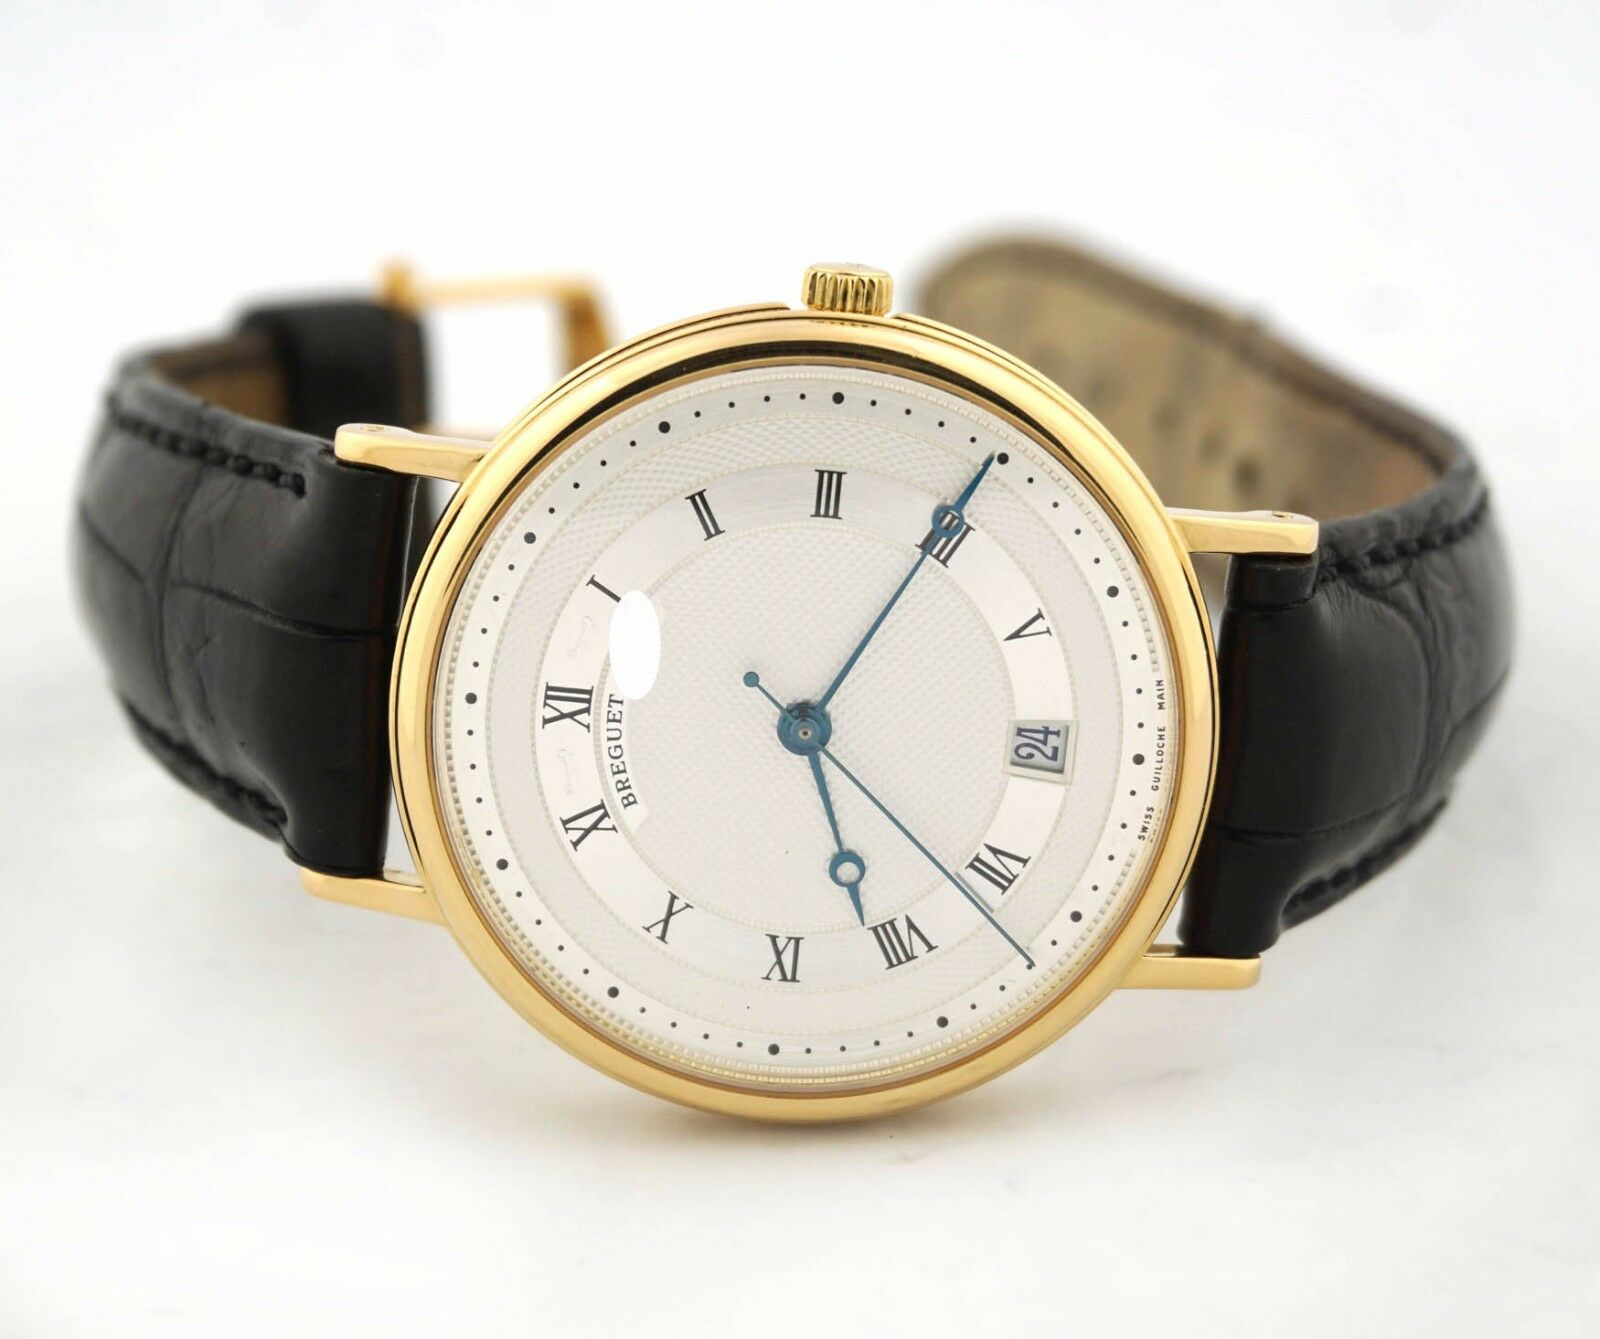 BREGUET CLASSIQUE AUTOMATIC 5930BA/12/986 18K YELLOW GOLD WATCH - watch picture 1